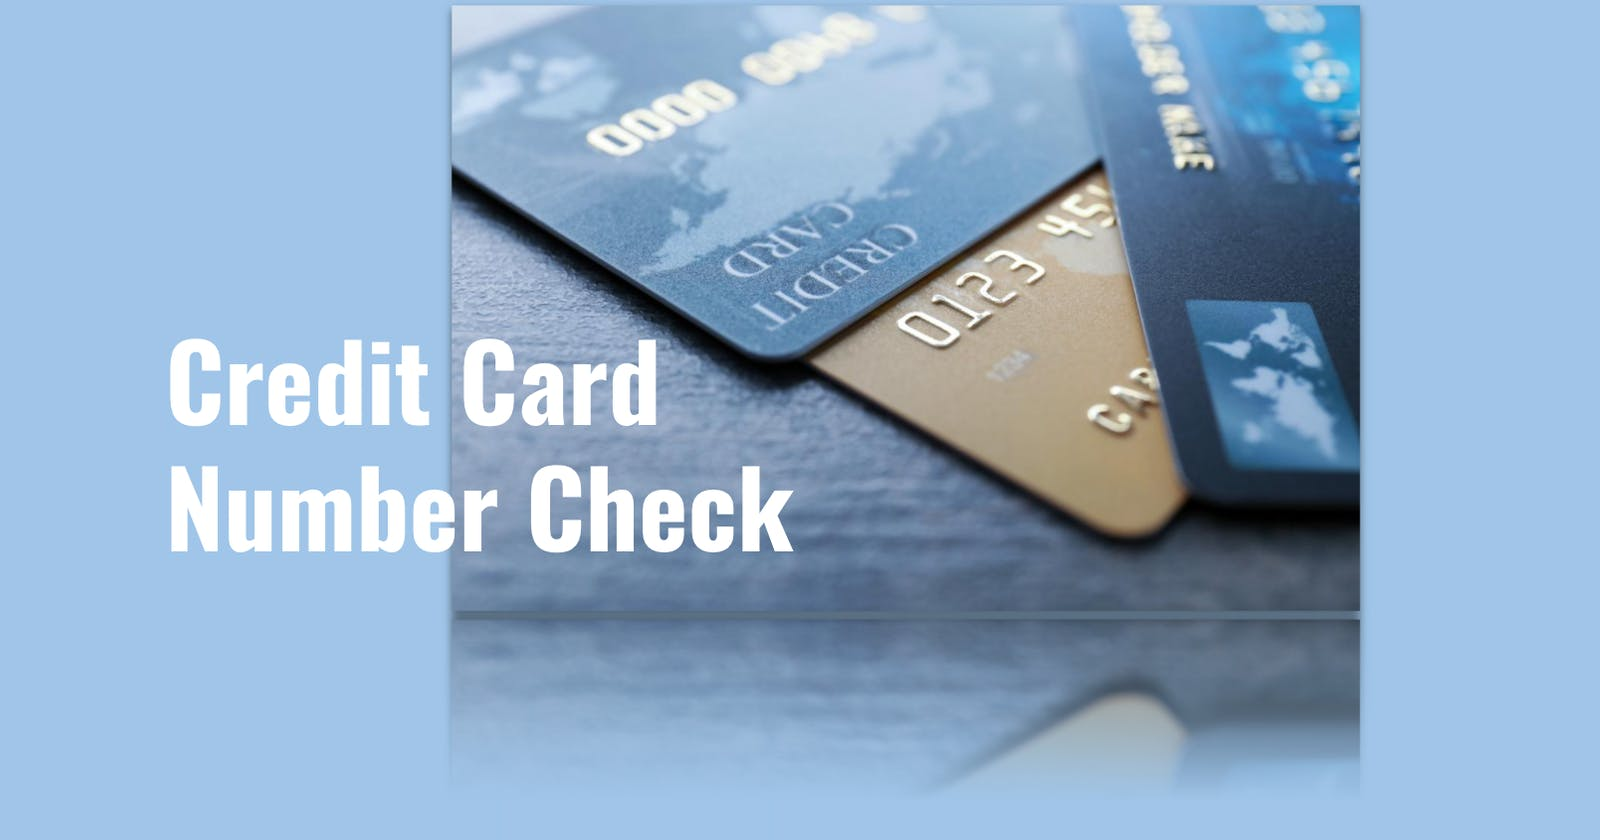 Credit card number check